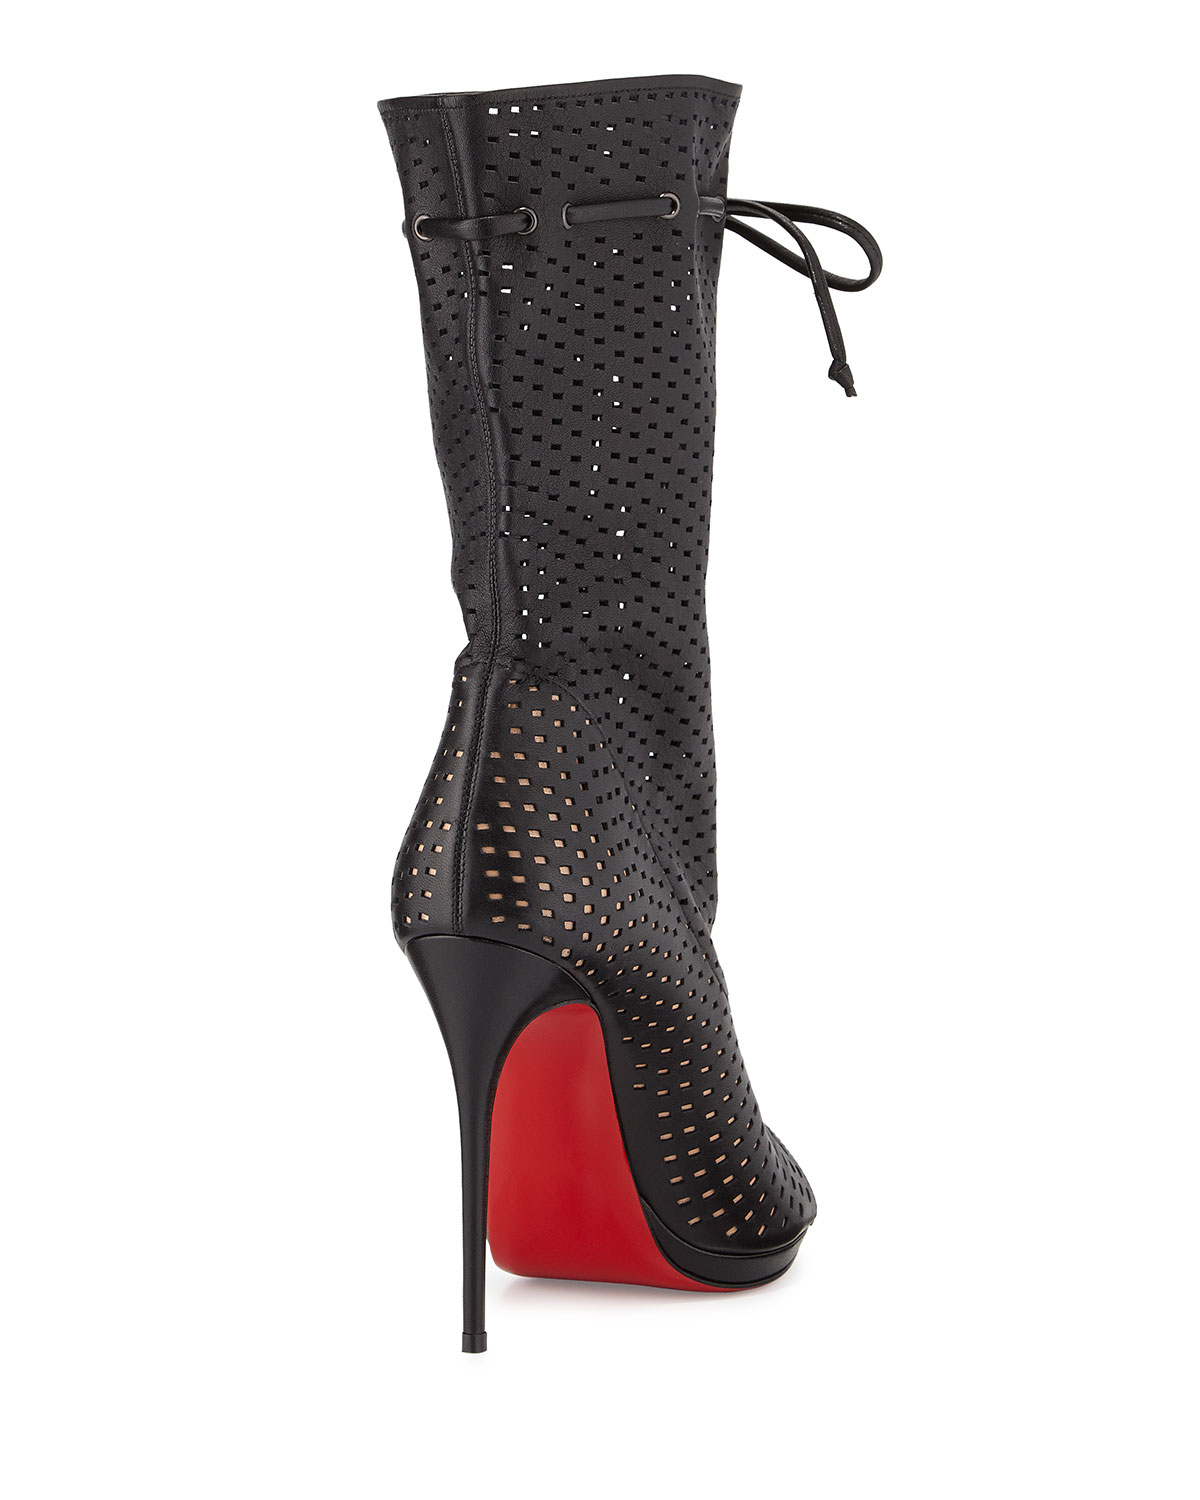 counterfeit christian louboutin shoes - christian louboutin suede boots Black leather harness | cosmetics ...